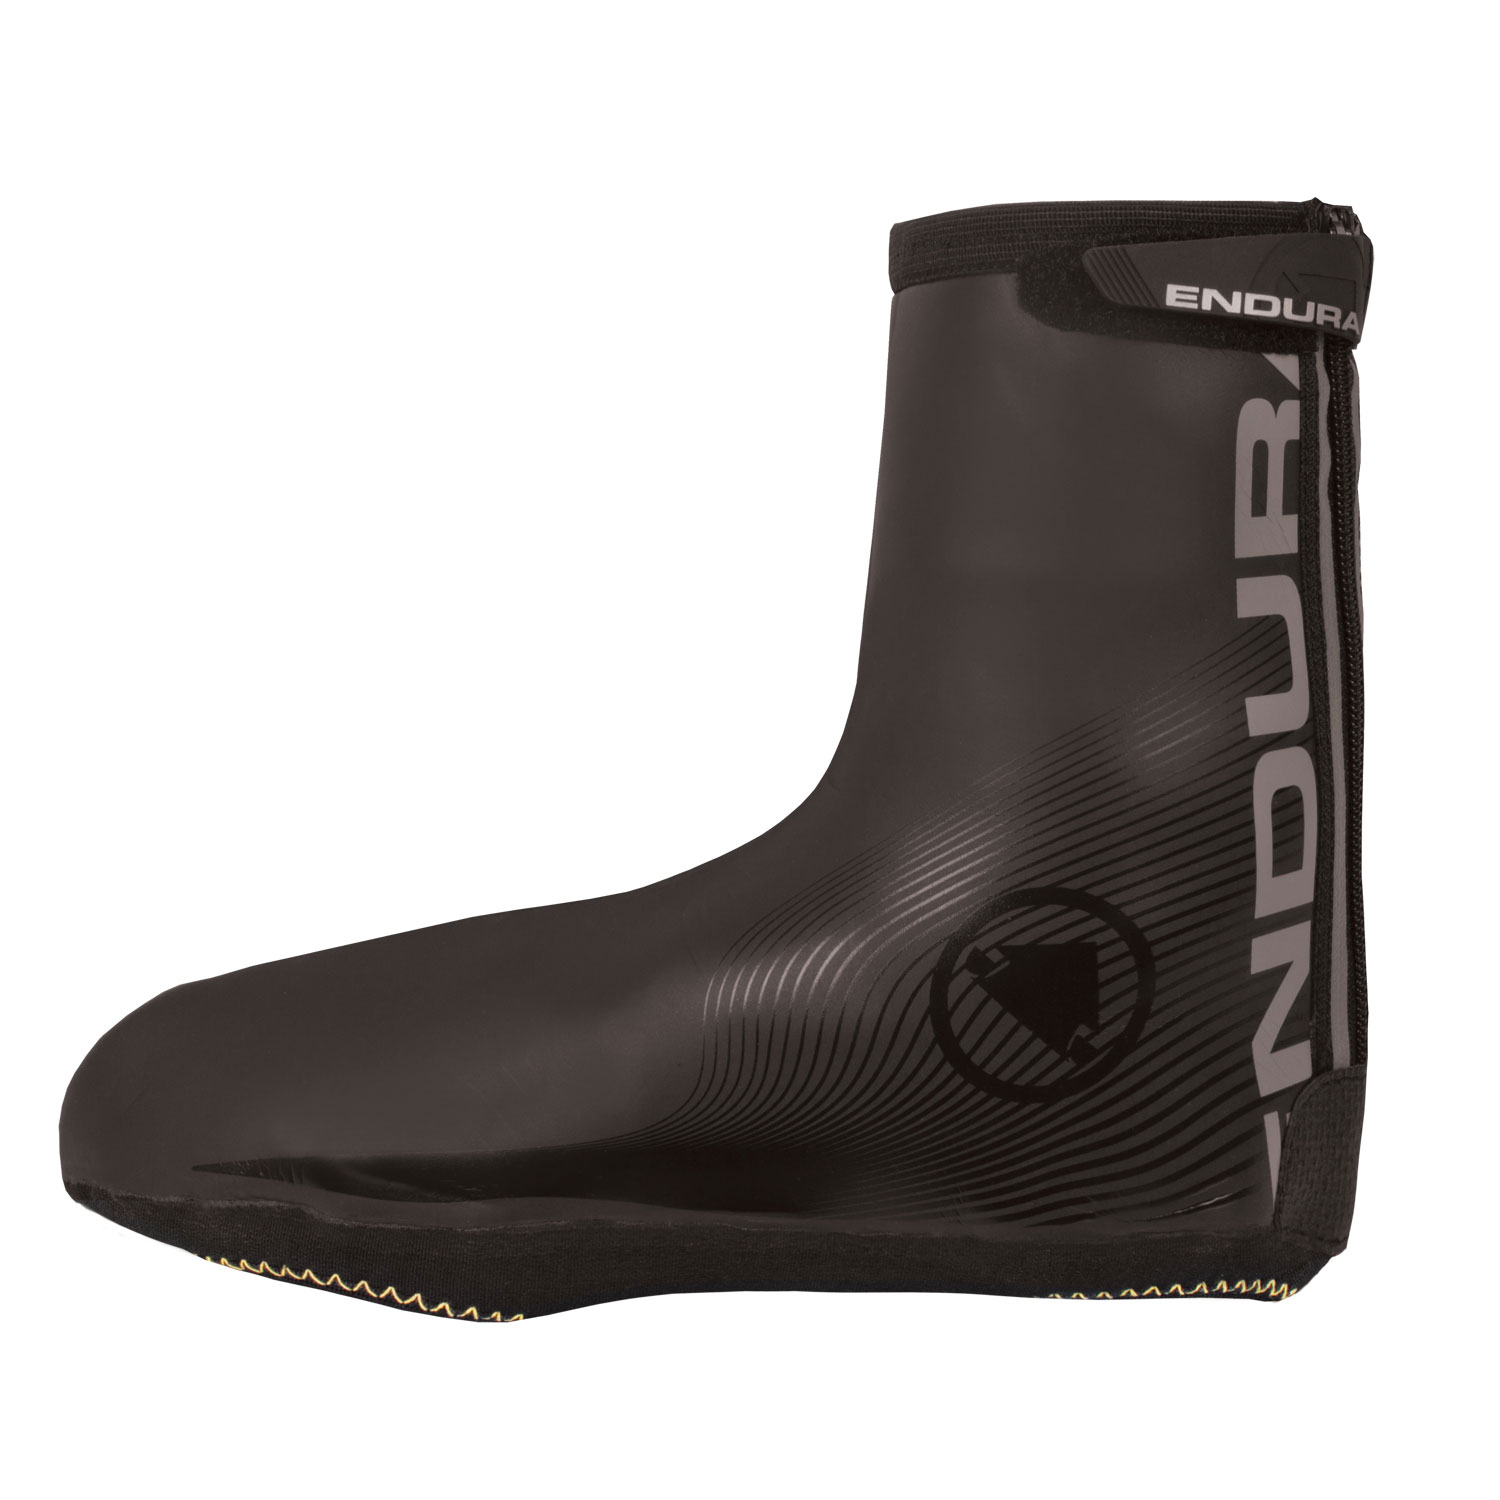 Endura Road II (Extra Extra Large) Waterproof Neoprene Winter Overshoes